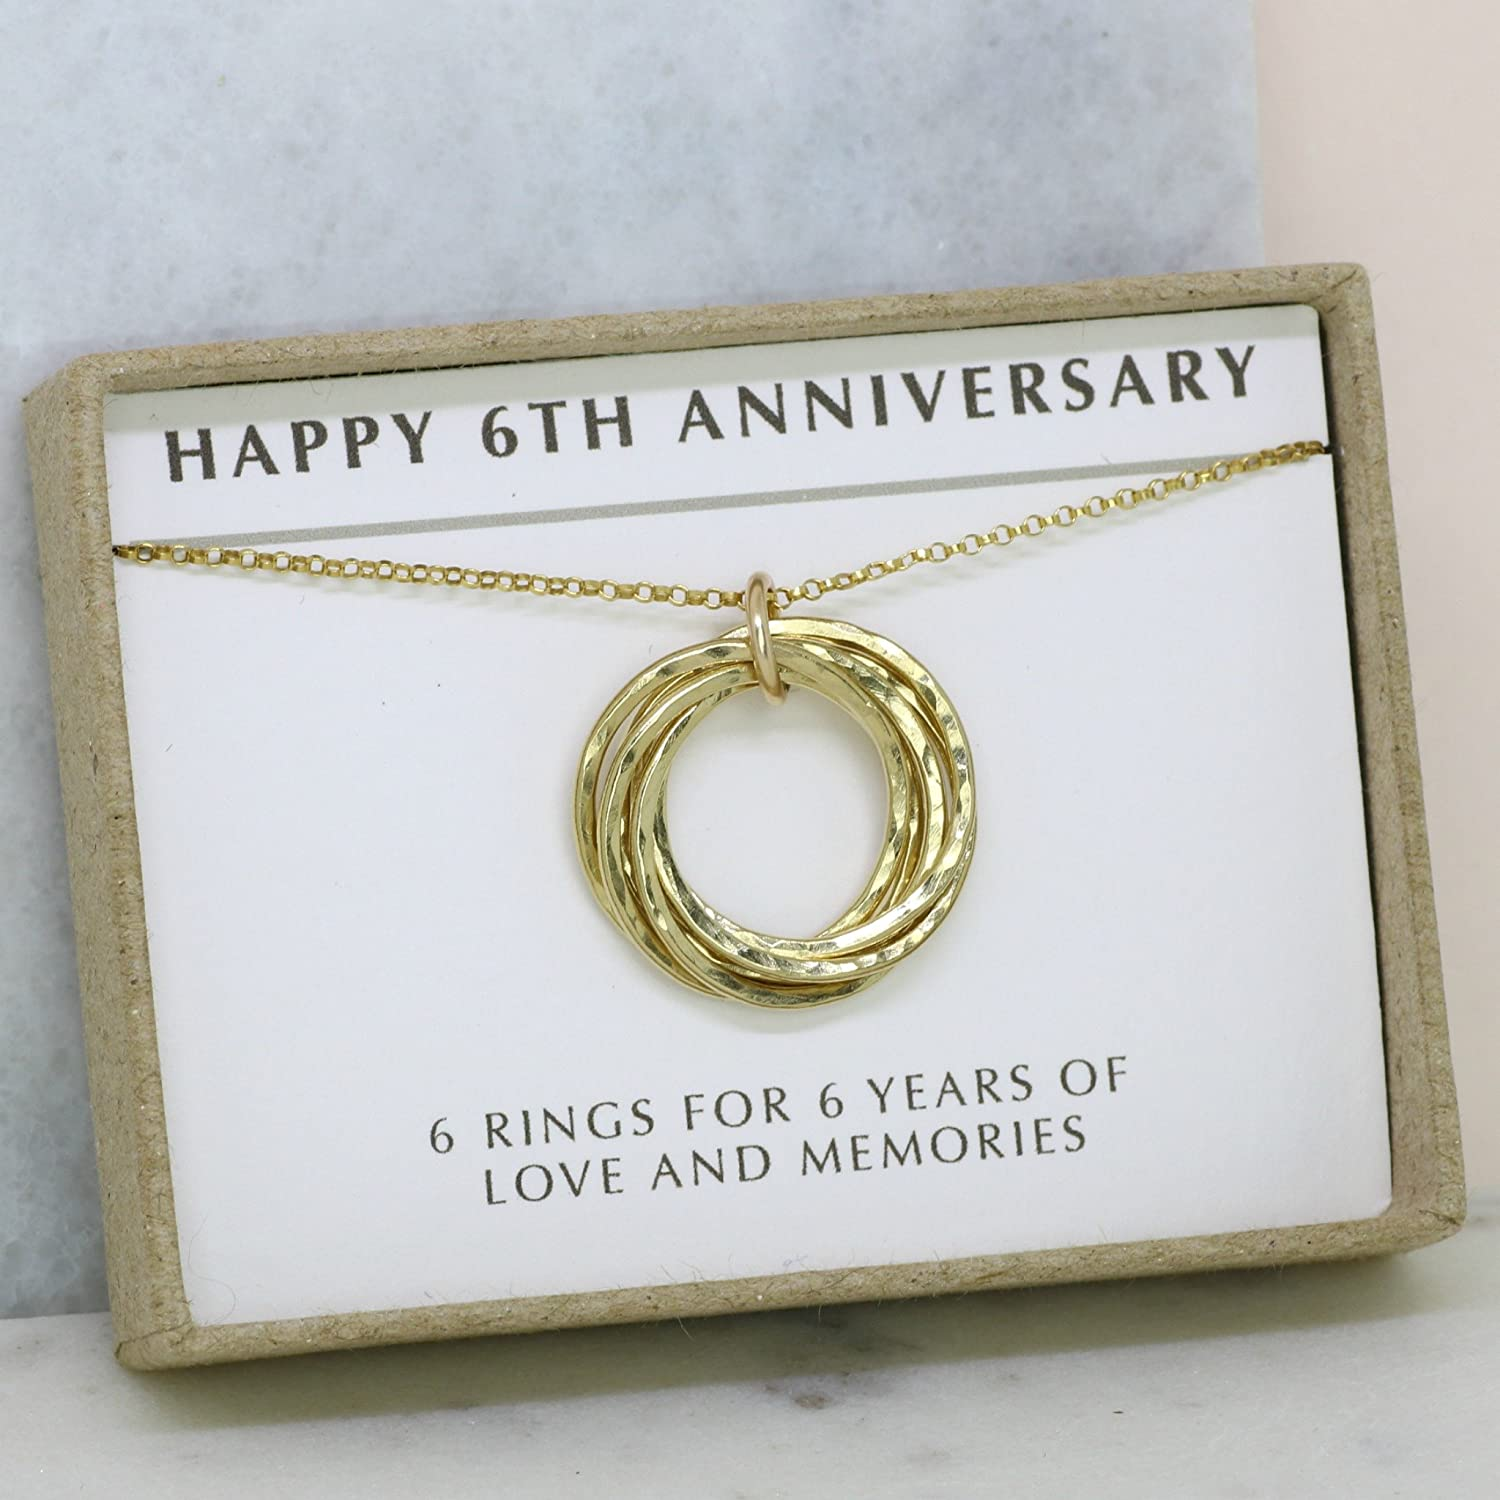 Wedding Anniversary Gifts For Her.6th Anniversary Gift Gold Jewelry For Wife 6 Year Wedding Anniversary Gift For Her Lilia